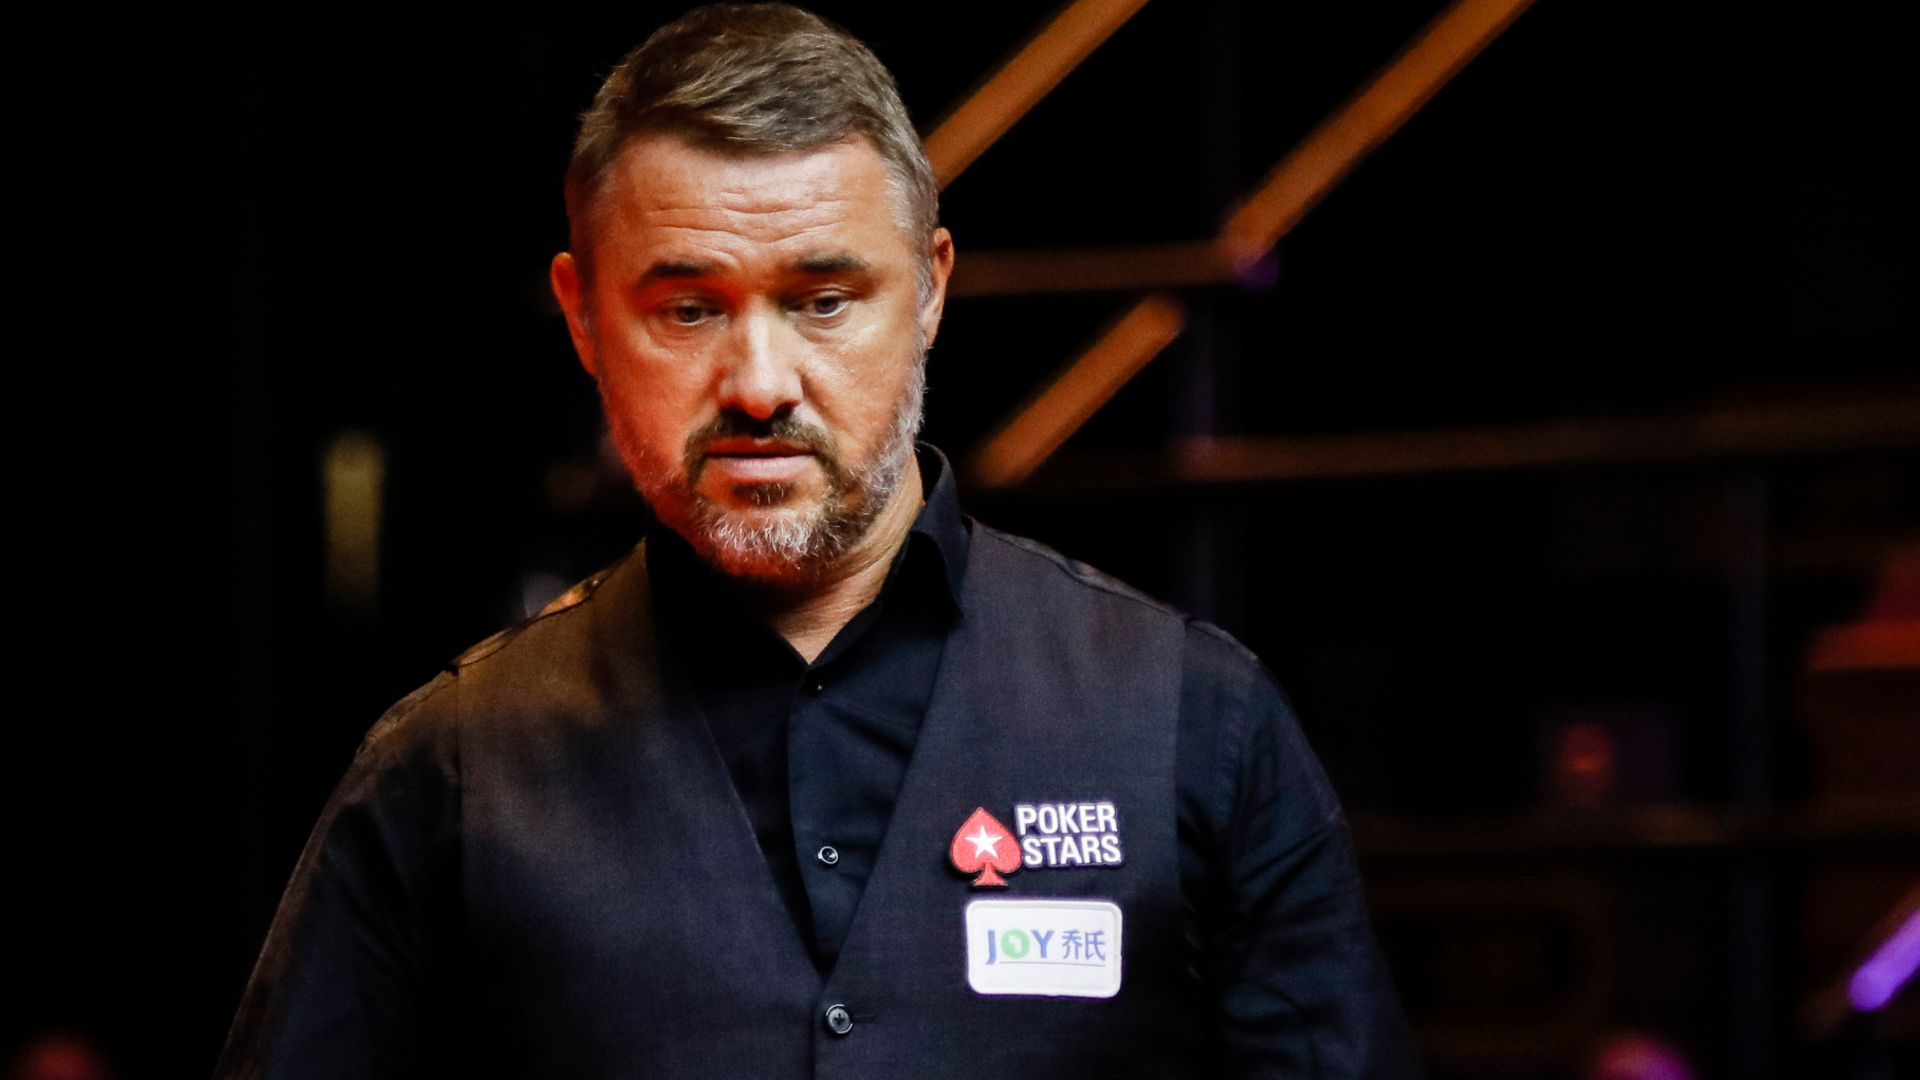 Hendry's Crucible dreams ended in second qualifying round